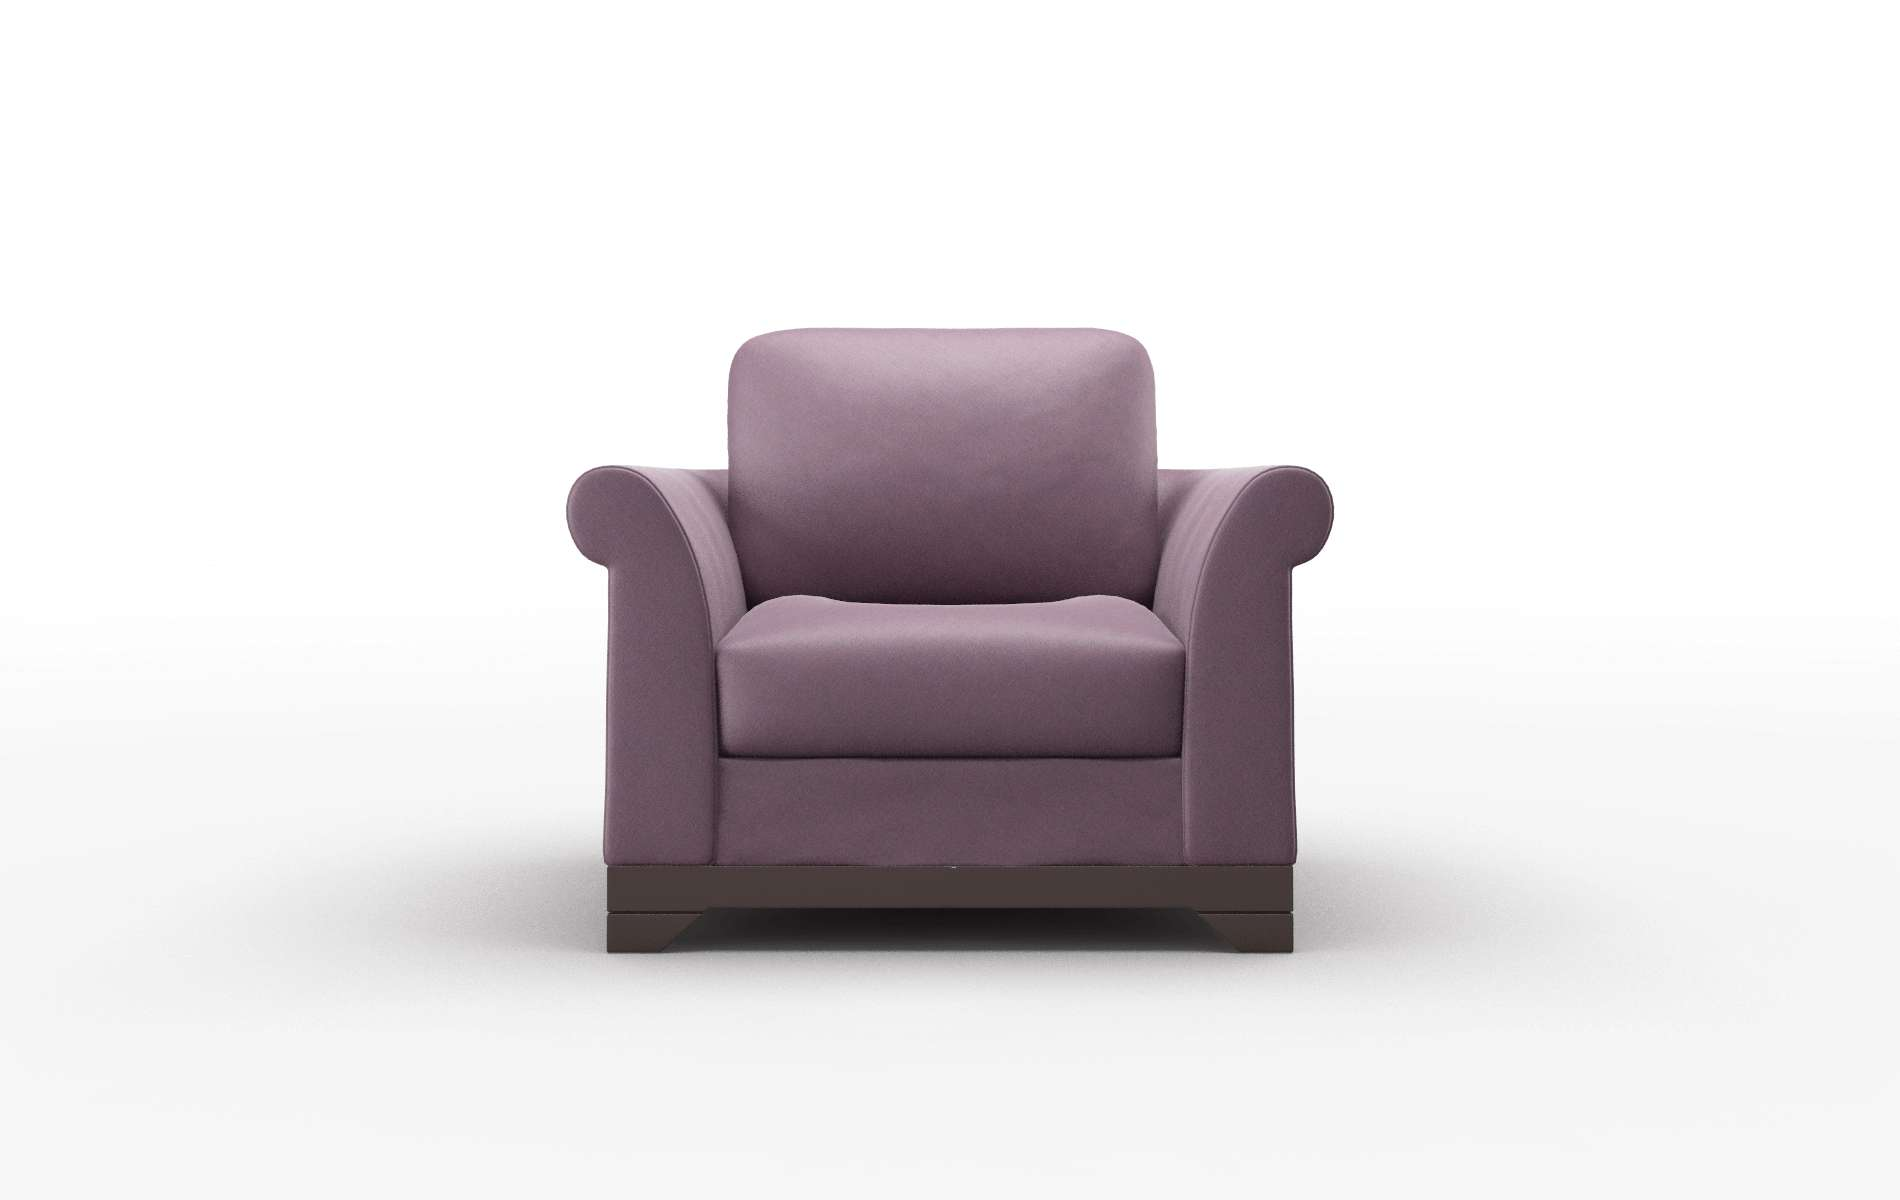 Denver Bella Aubergine chair espresso legs